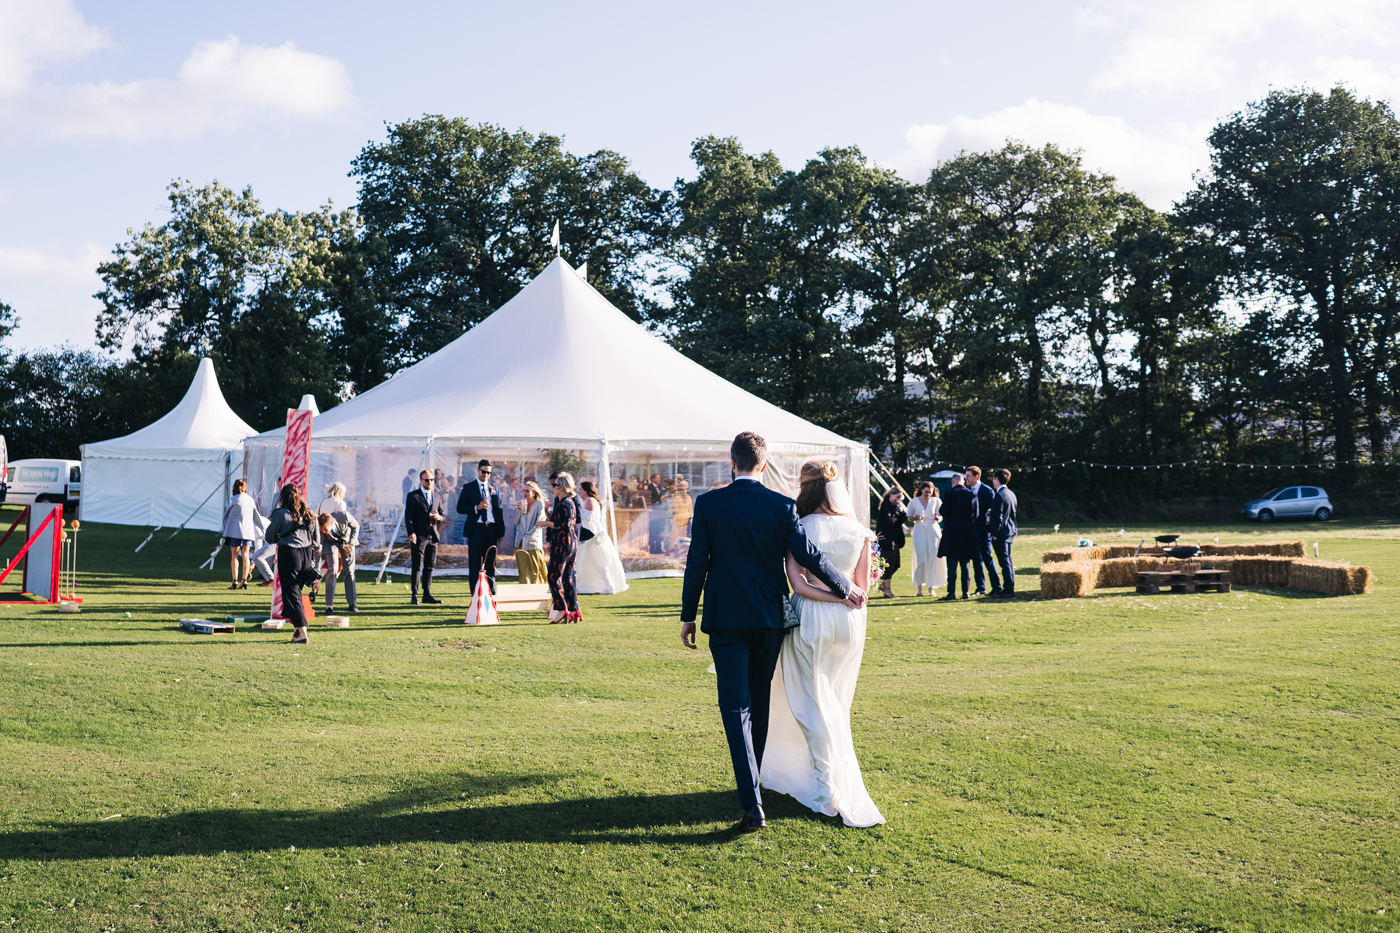 north-yorkshire-marquee-wedding-photographer-teesside-north-east-wedding-photography-0063.jpg